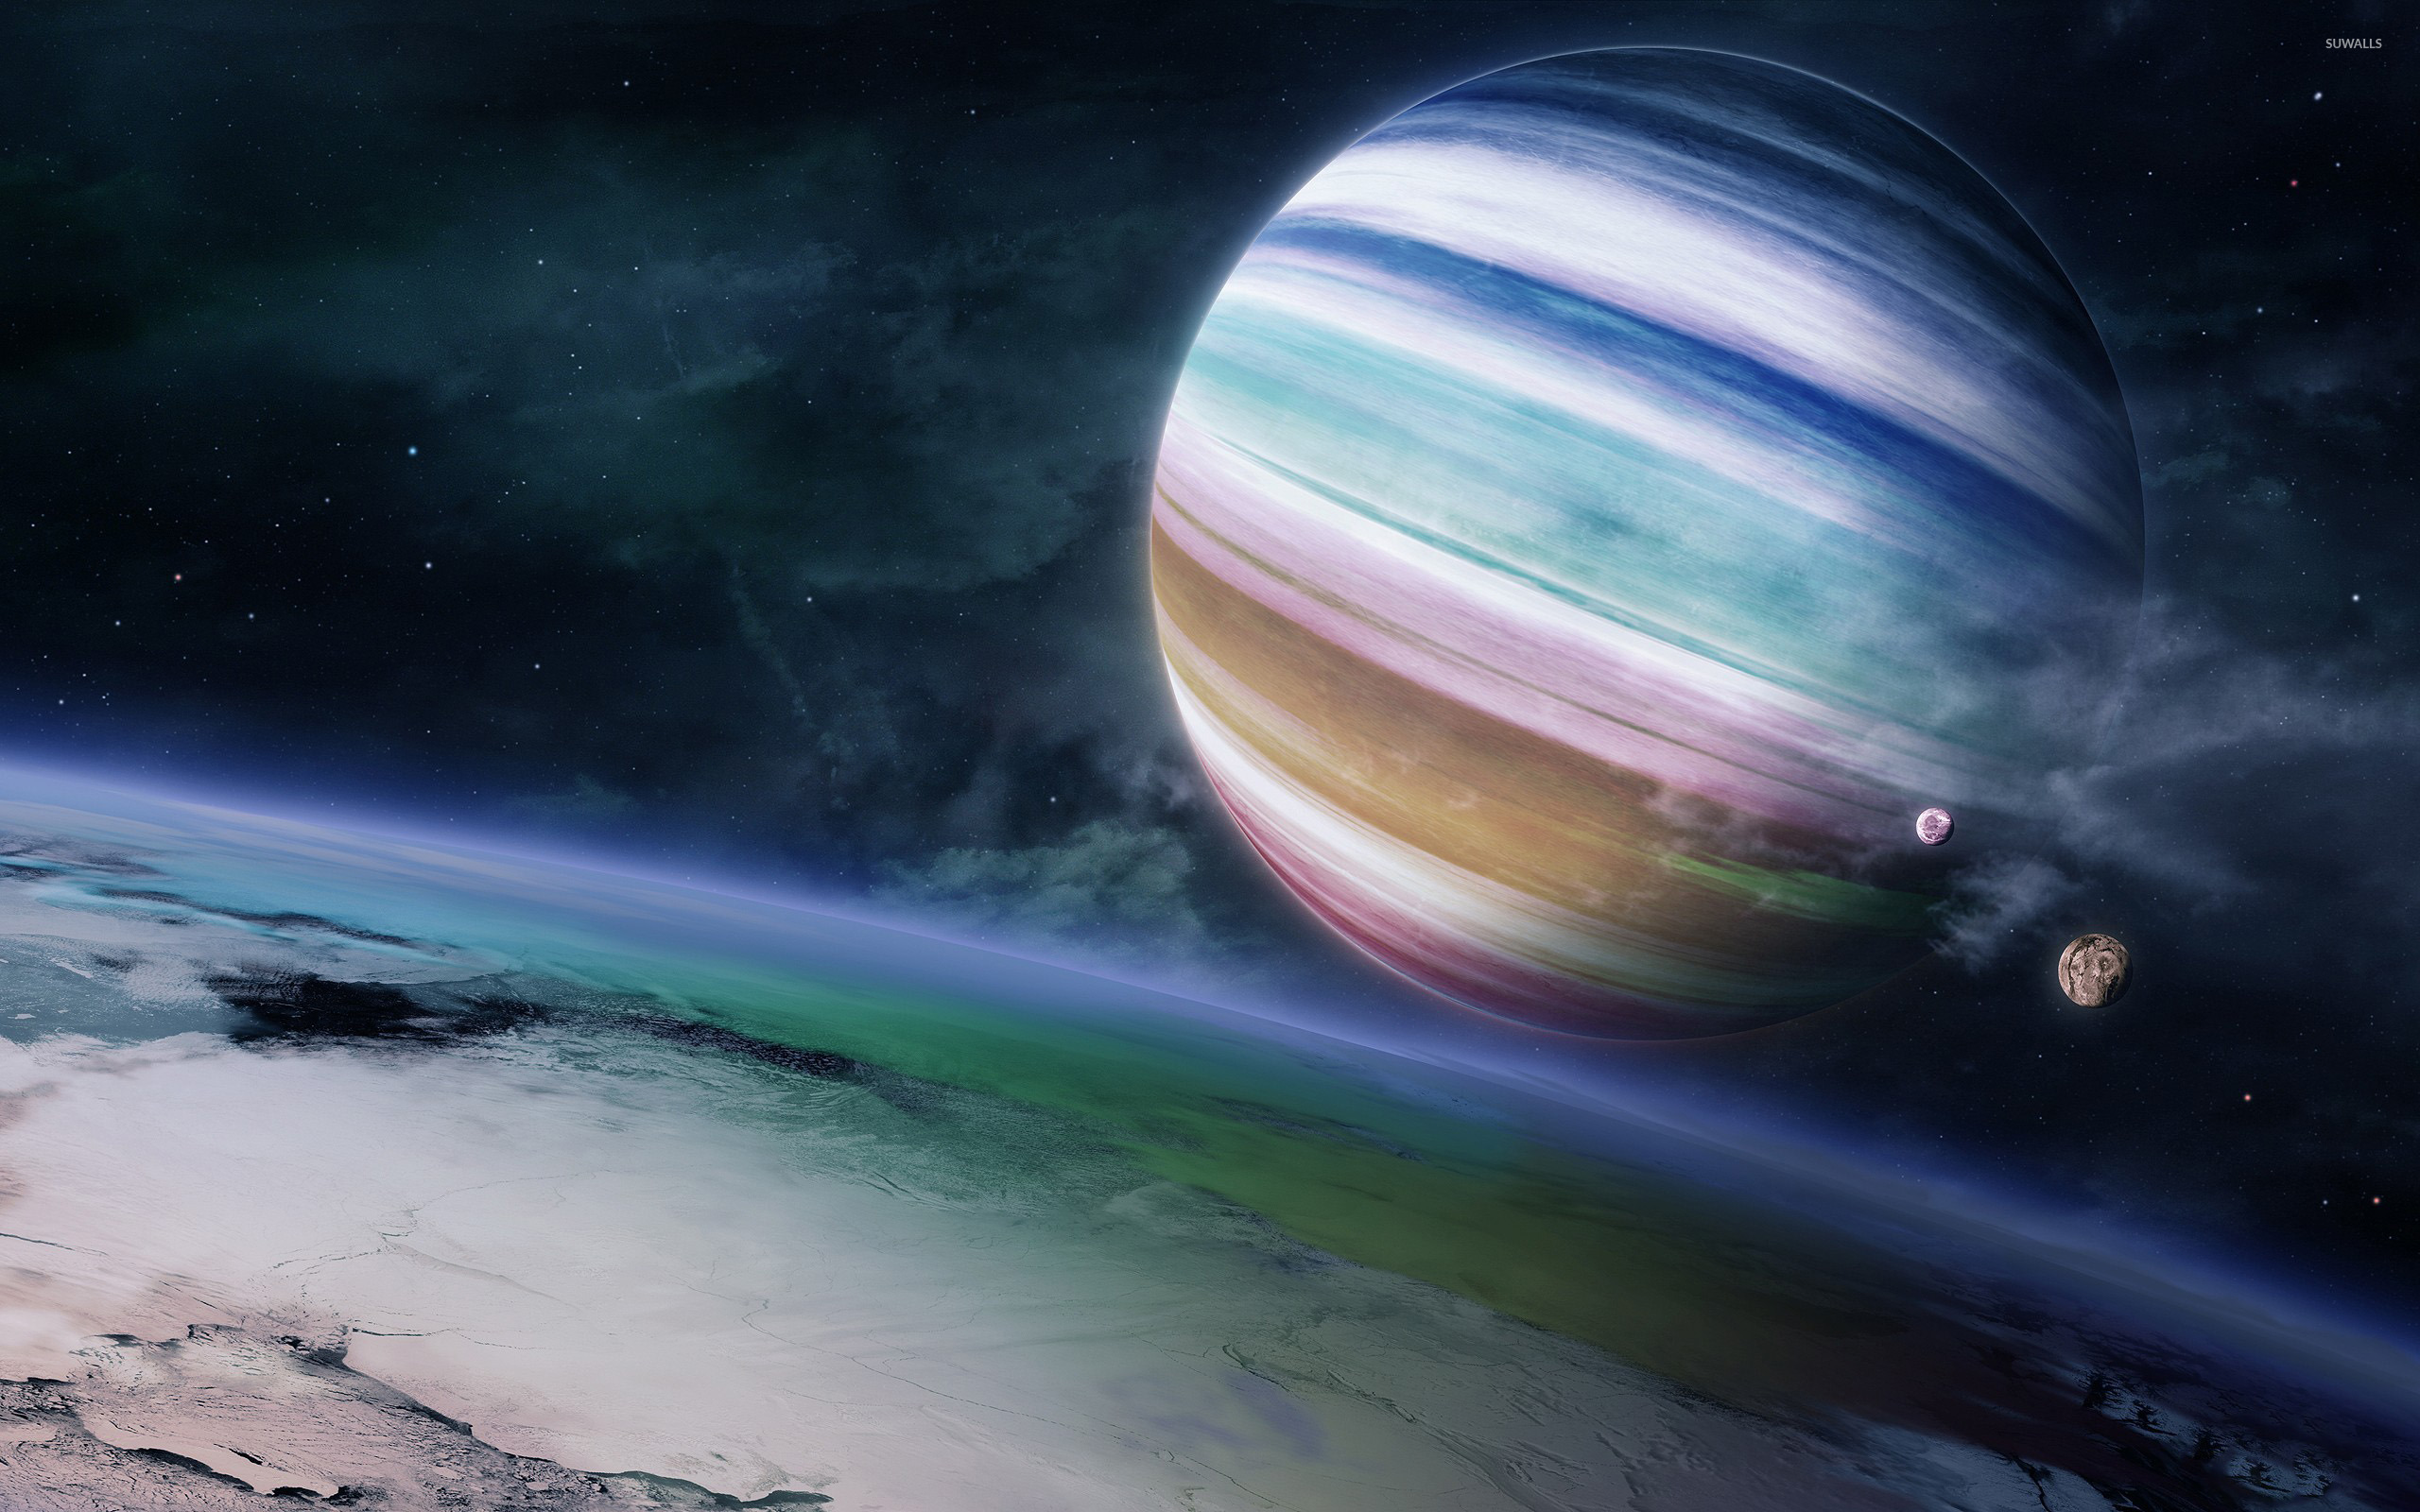 Colorful planet wallpaper - Space wallpapers - #44238